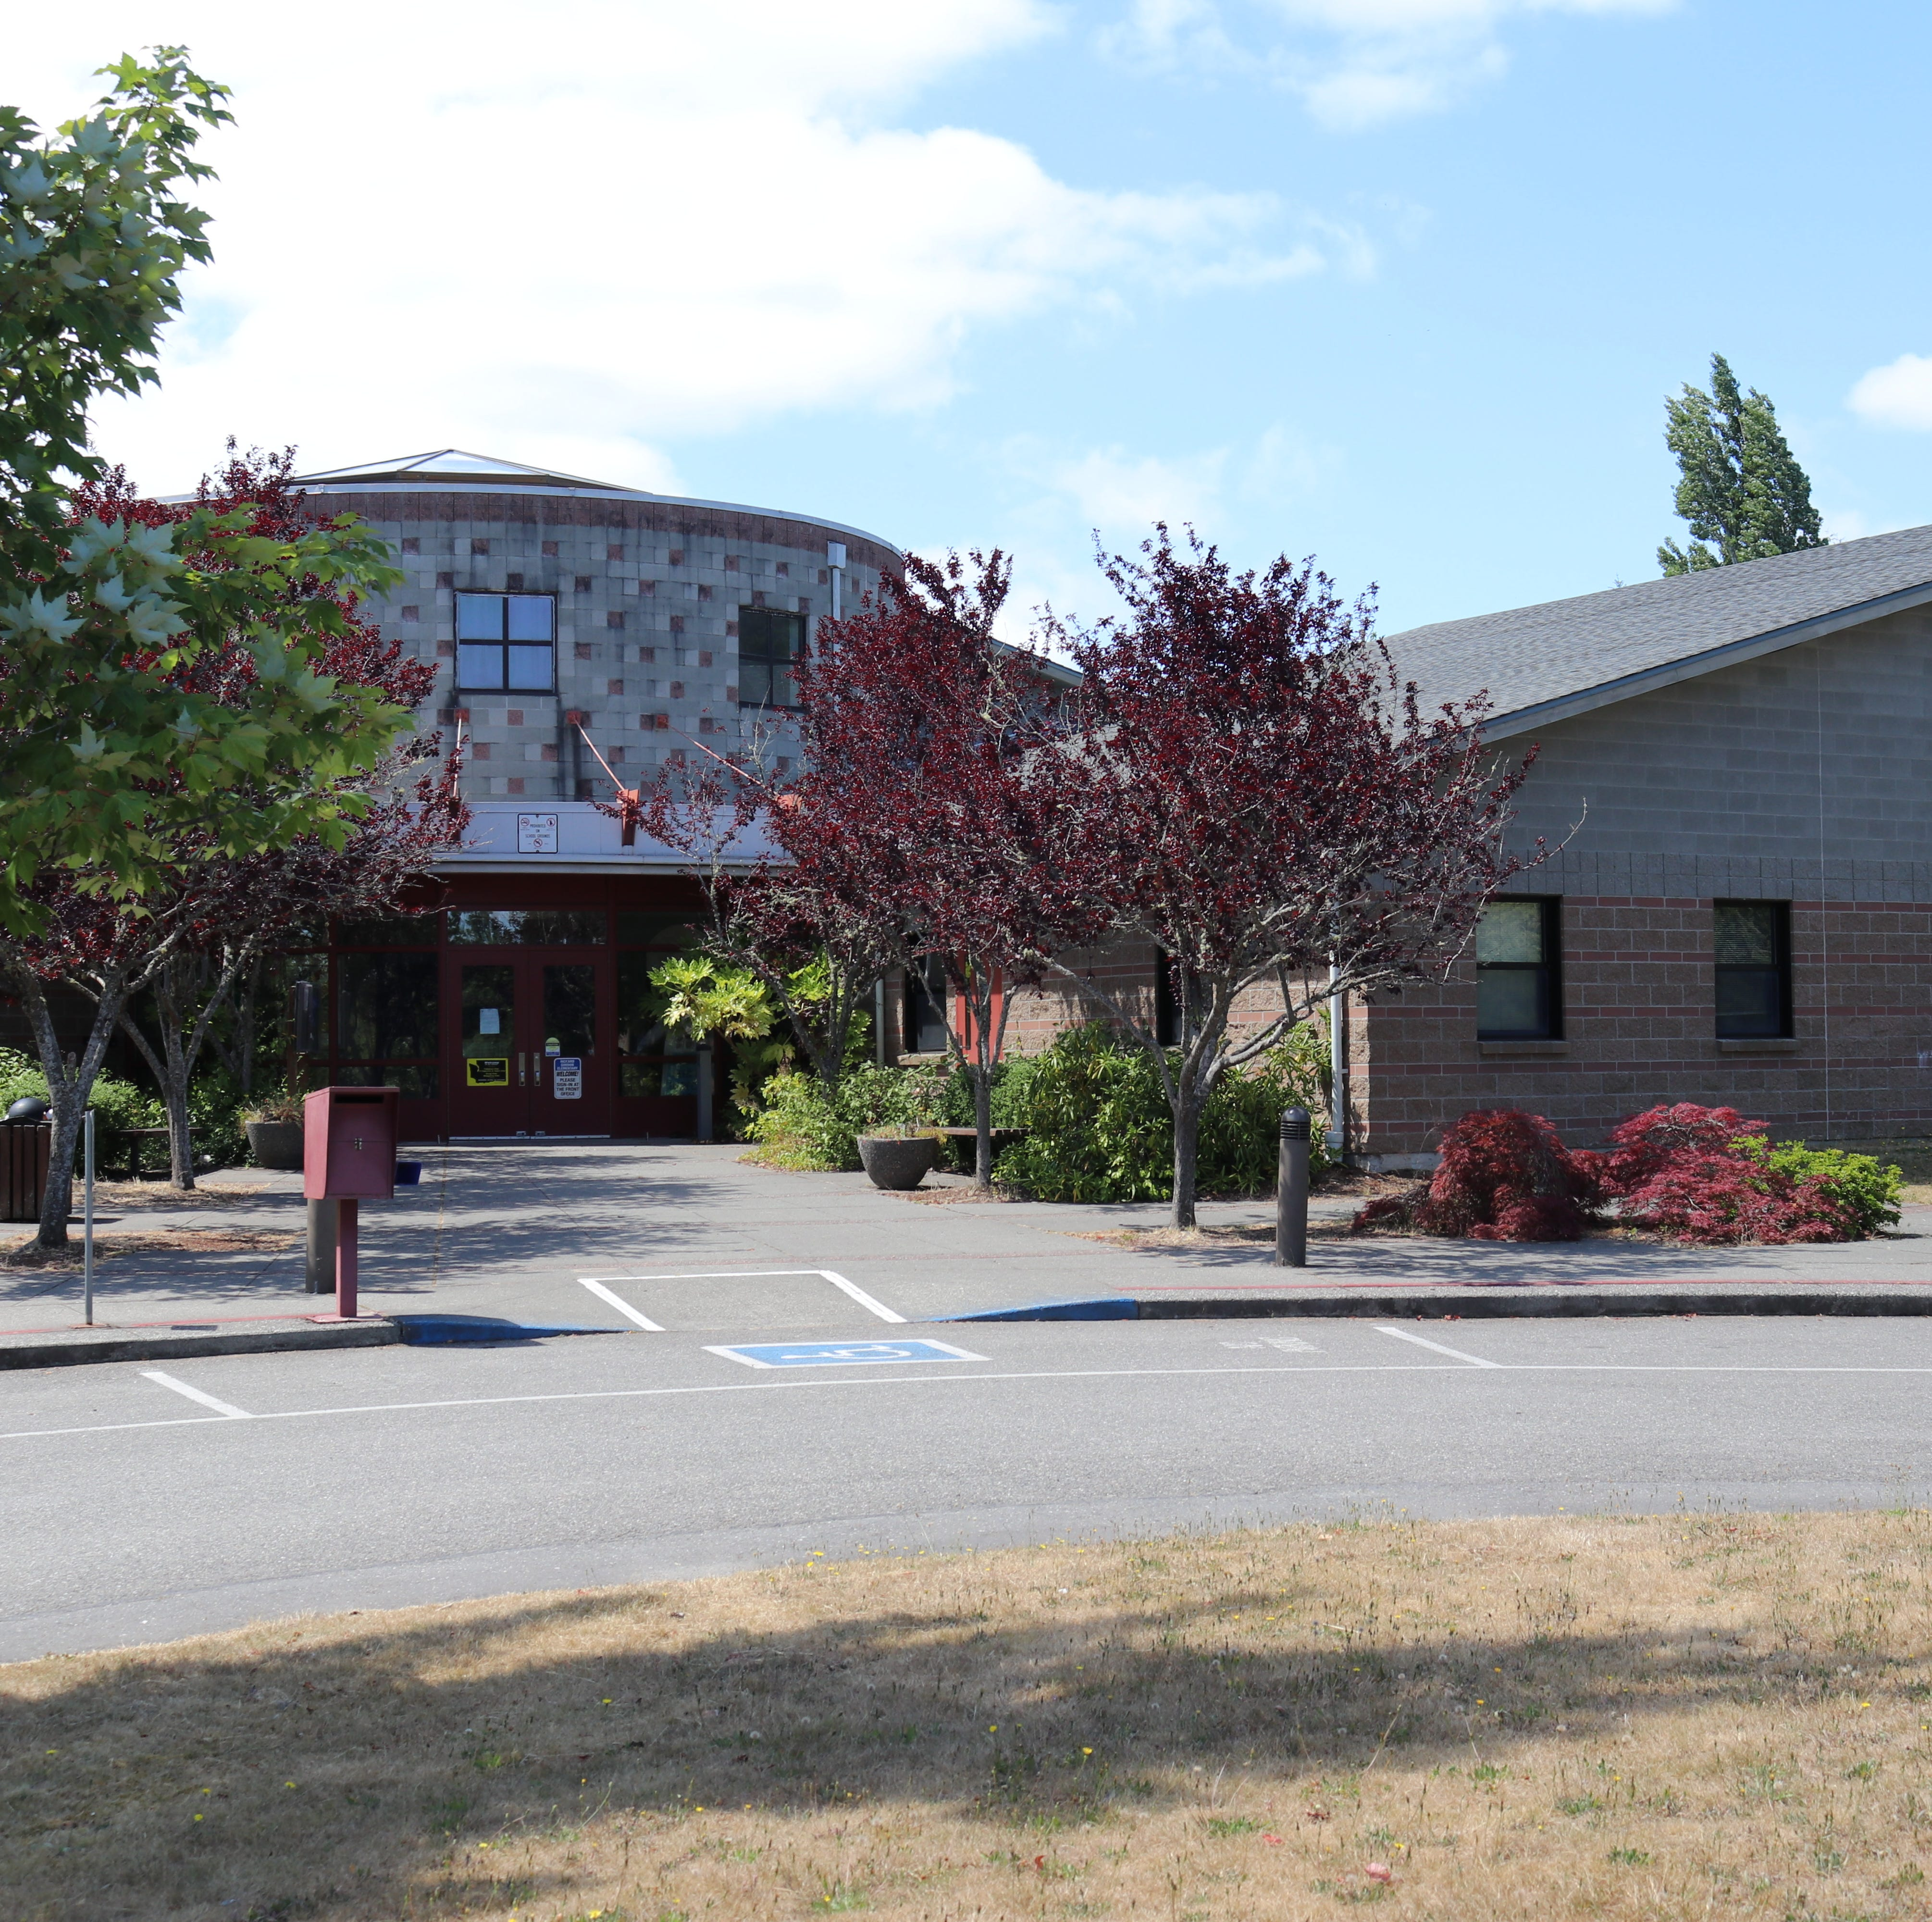 North Kitsap School District to buy land for future Gordon Elementary expansion